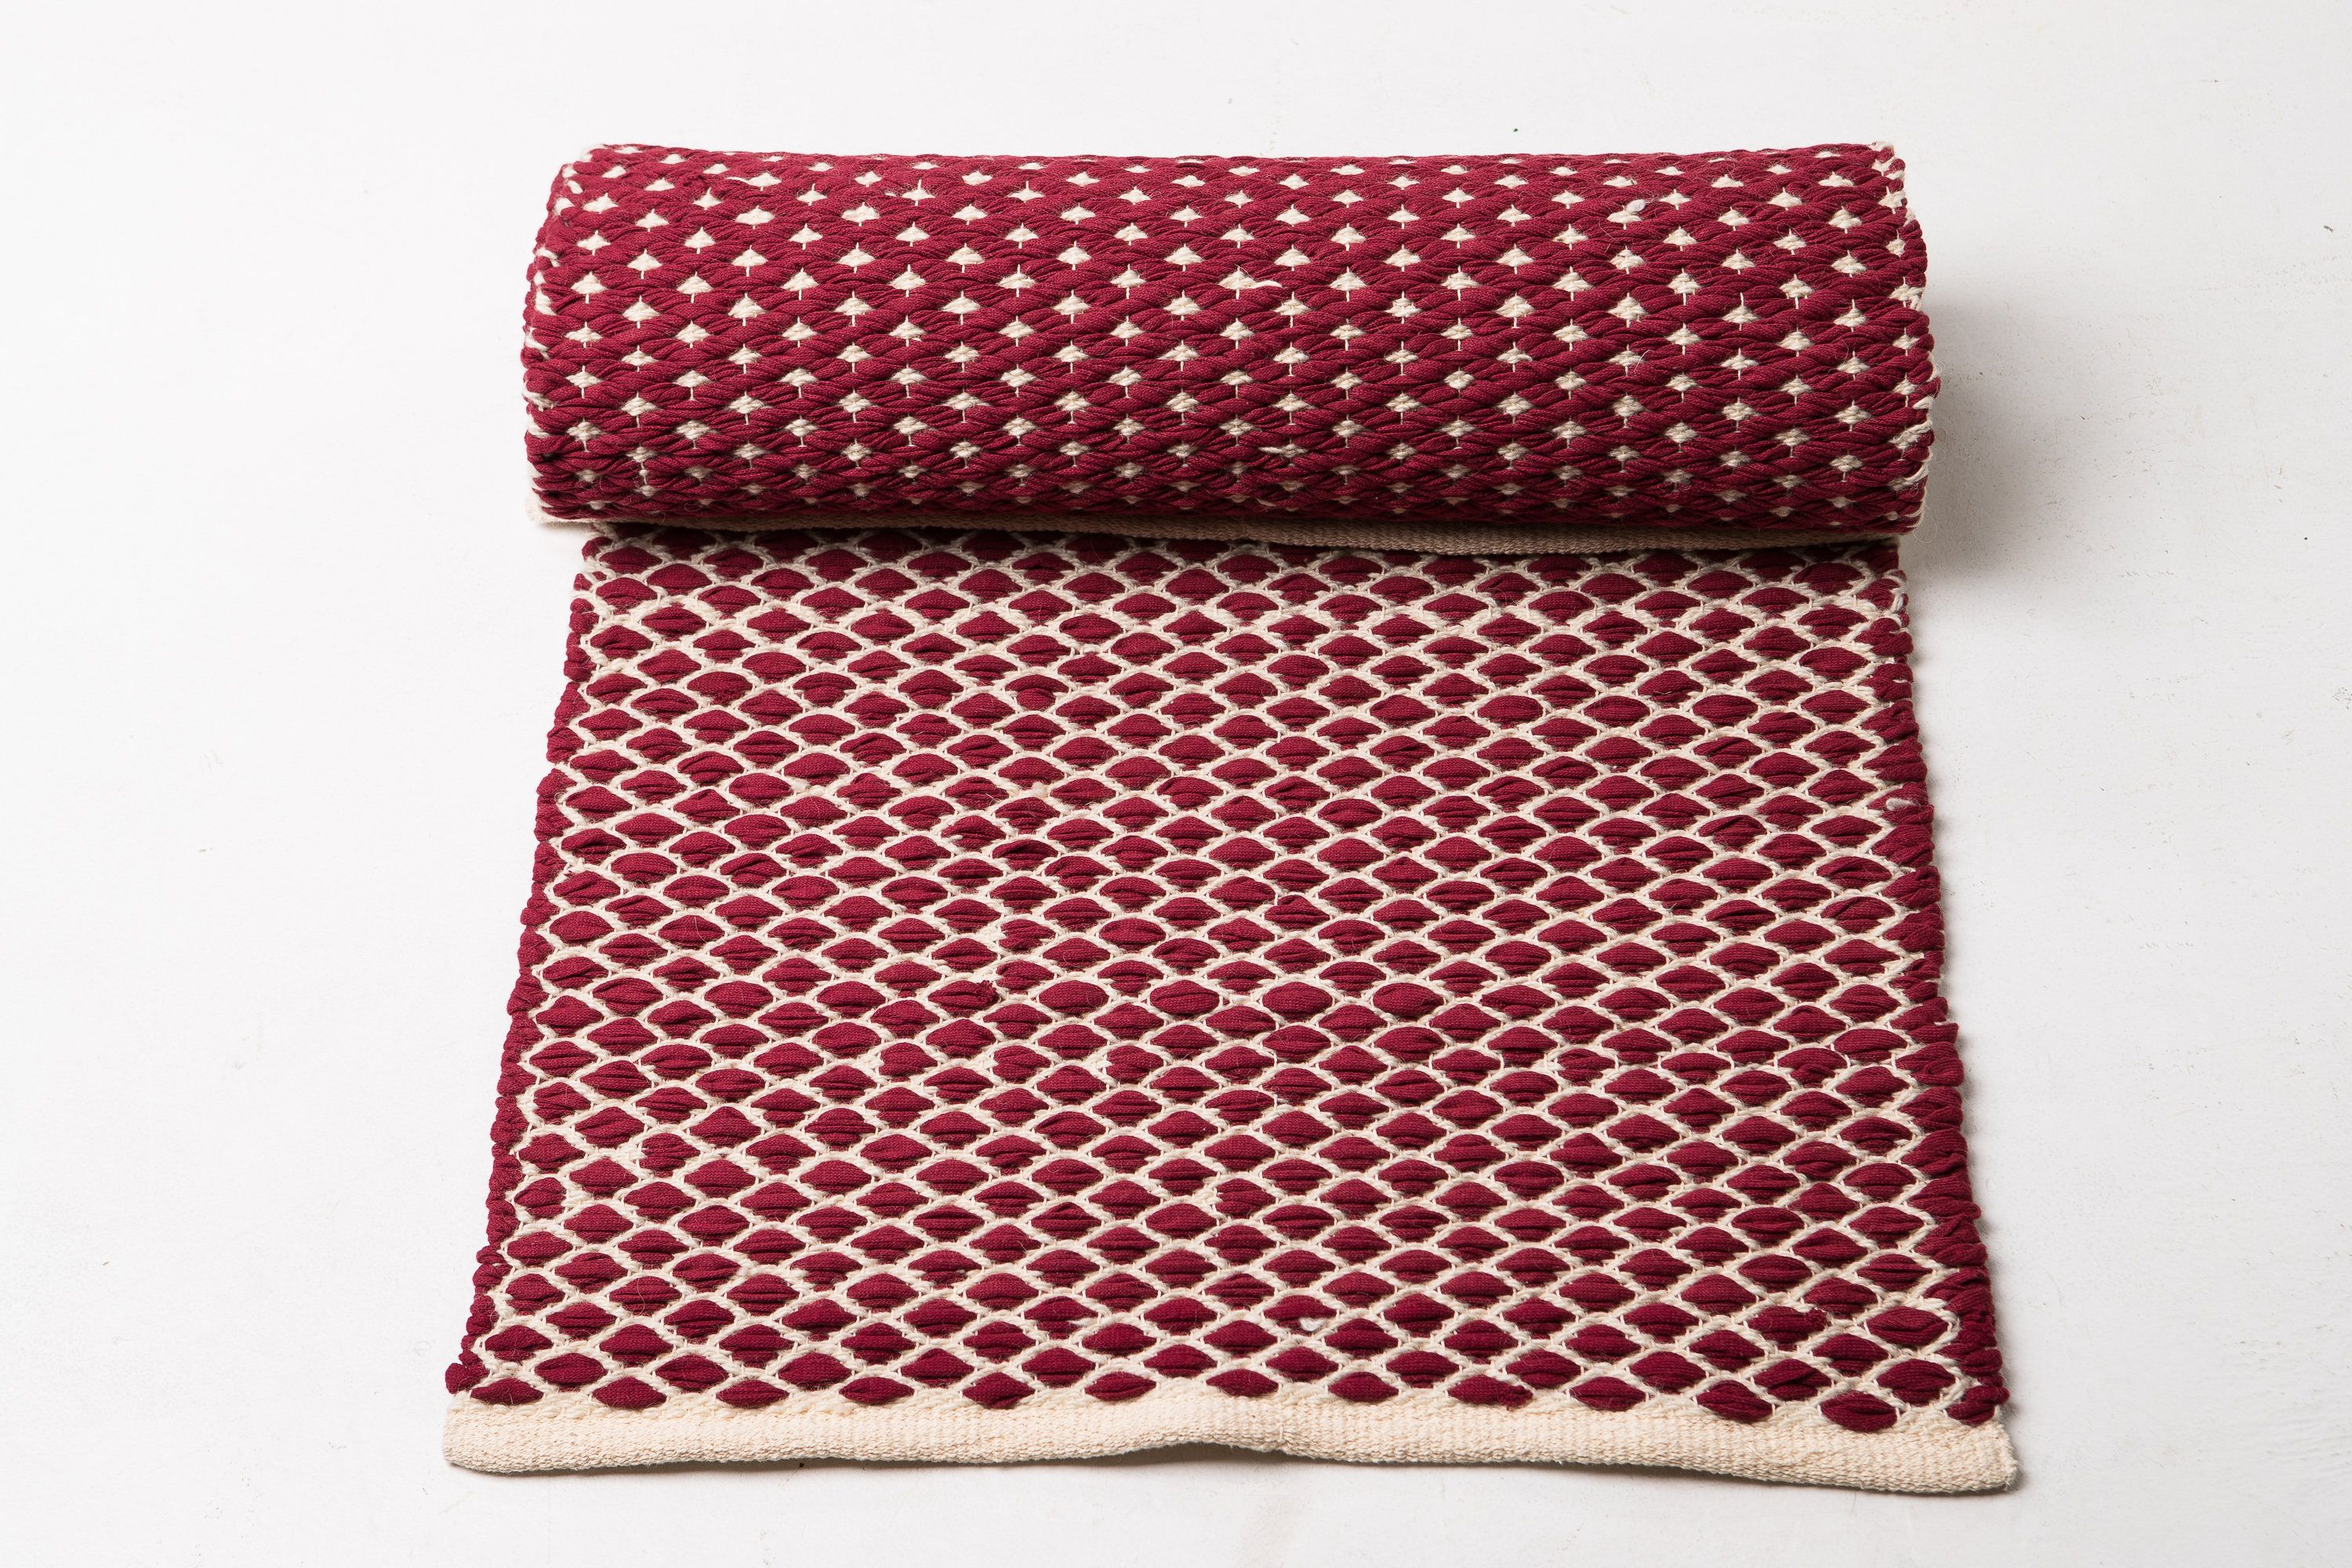 Red And White Cotton Rug Kitchen 3 X 7ft Runner Rug Scandinavian Rug Handwoven Cotton And Wool Rug Red Washable Rug Modern Woven Rug Cotton Rug Scandinavian Rug Woven Rug